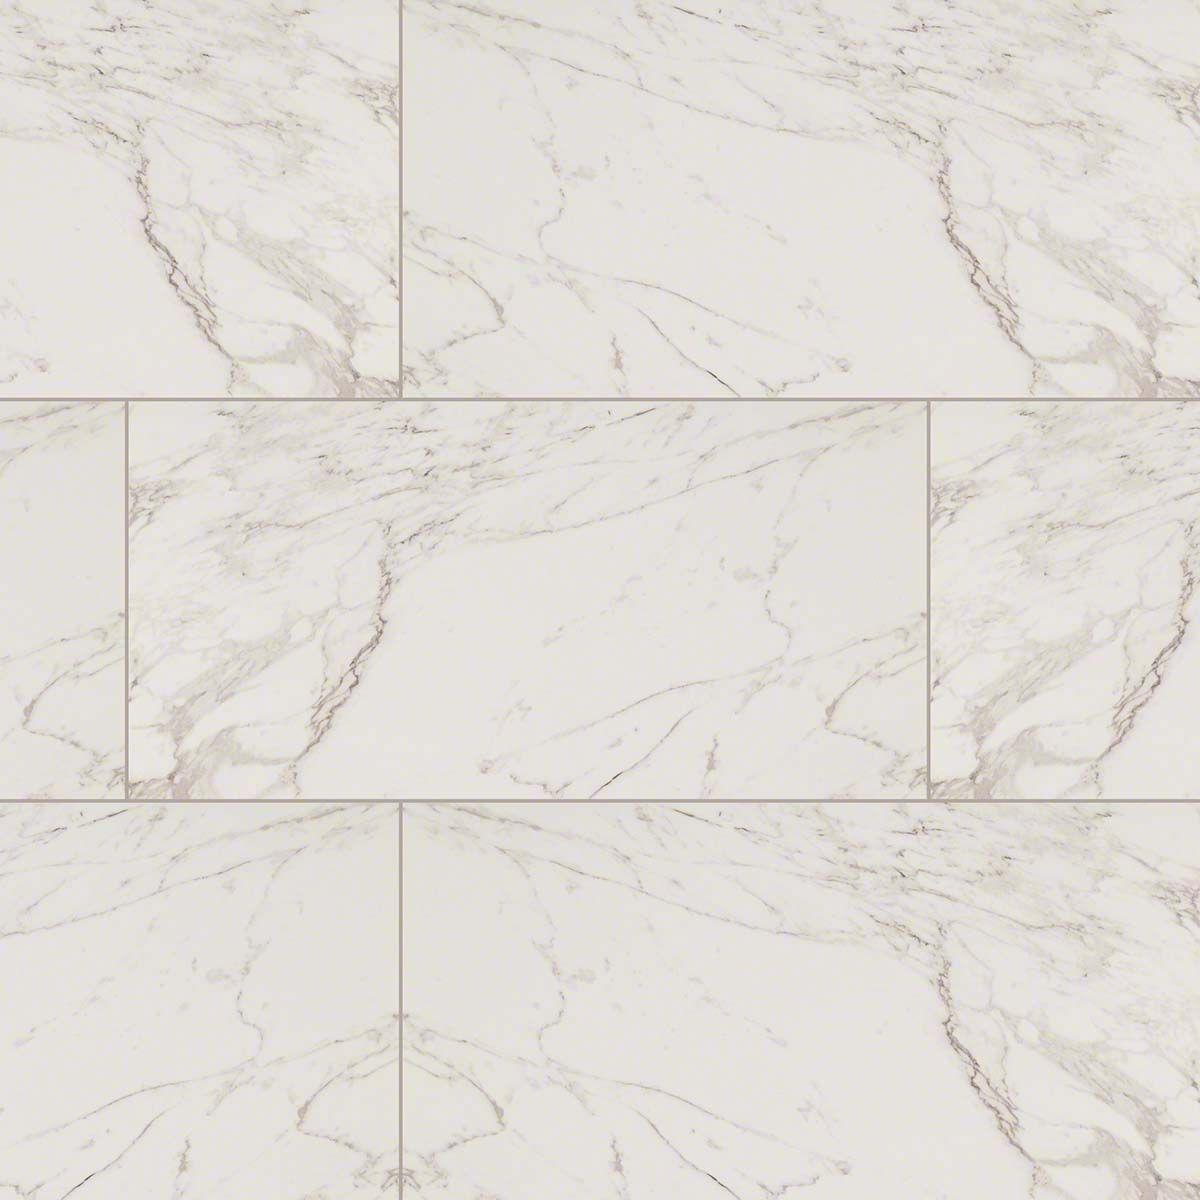 Carrara Pietra Series Porcelain Tile Marble Porcelain Tile Tile Floor Carrara